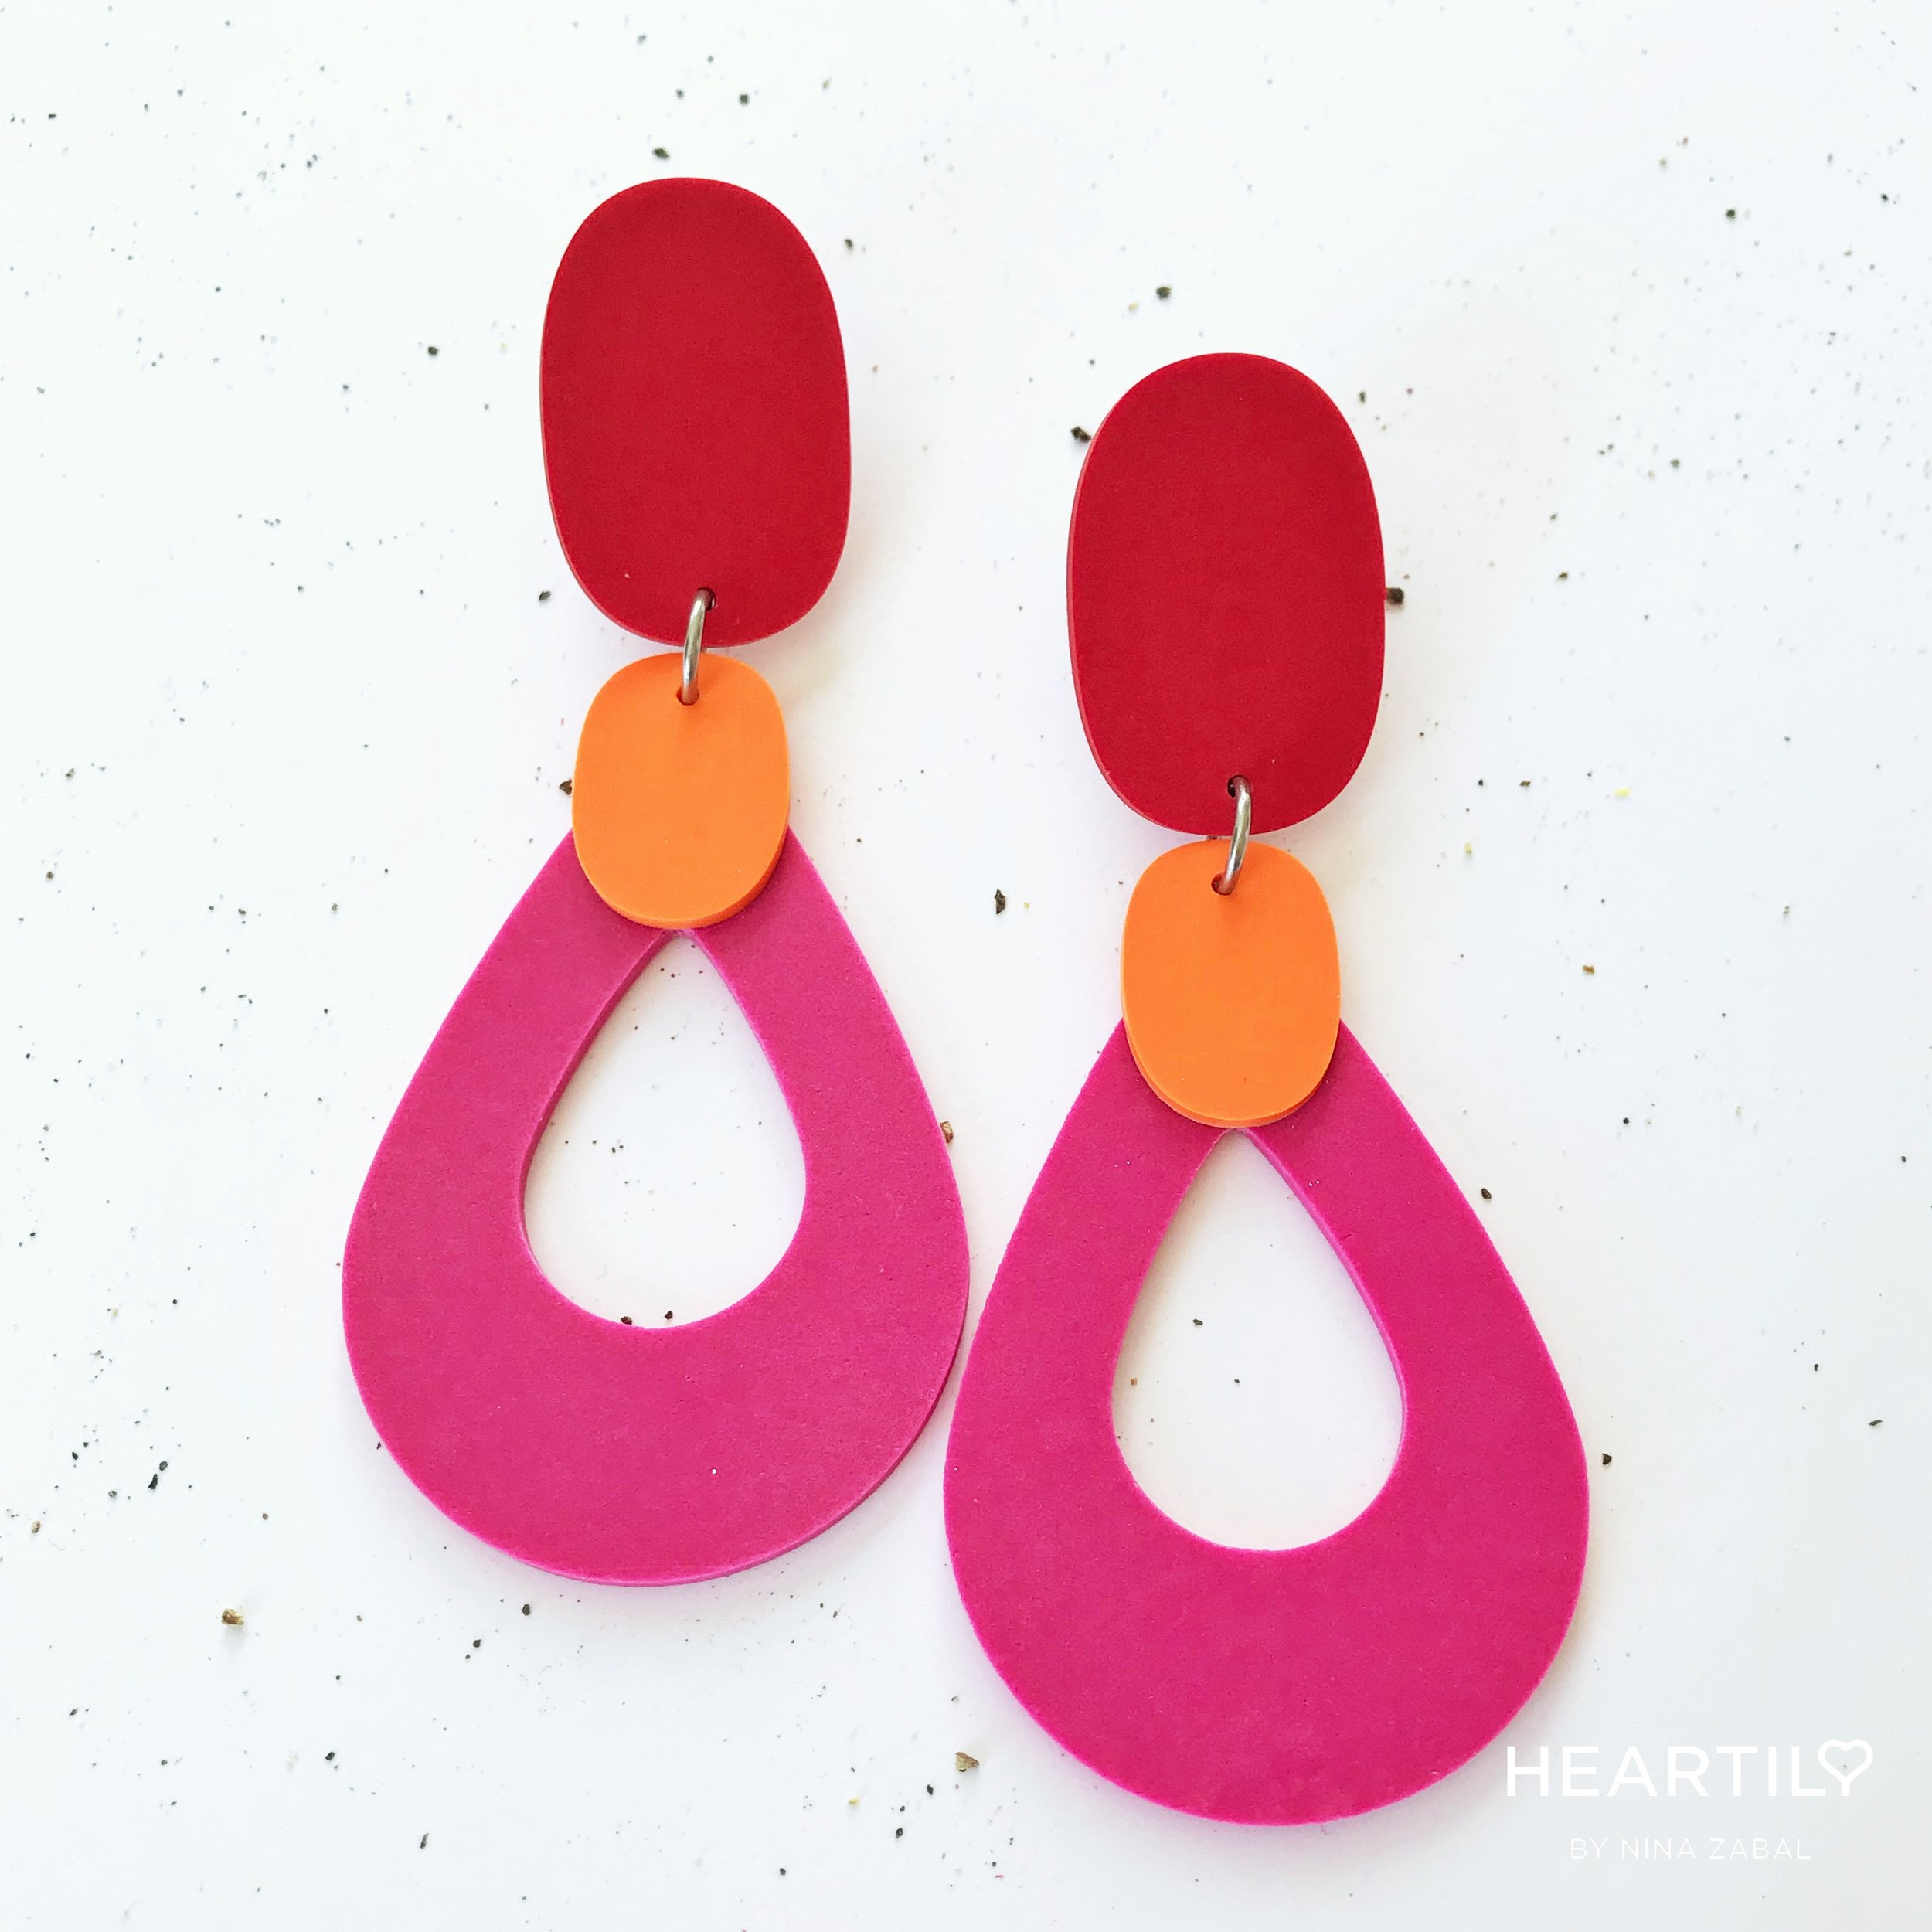 HEARTILY Cherry Kiss Collection    RED / PINK / ORANGE